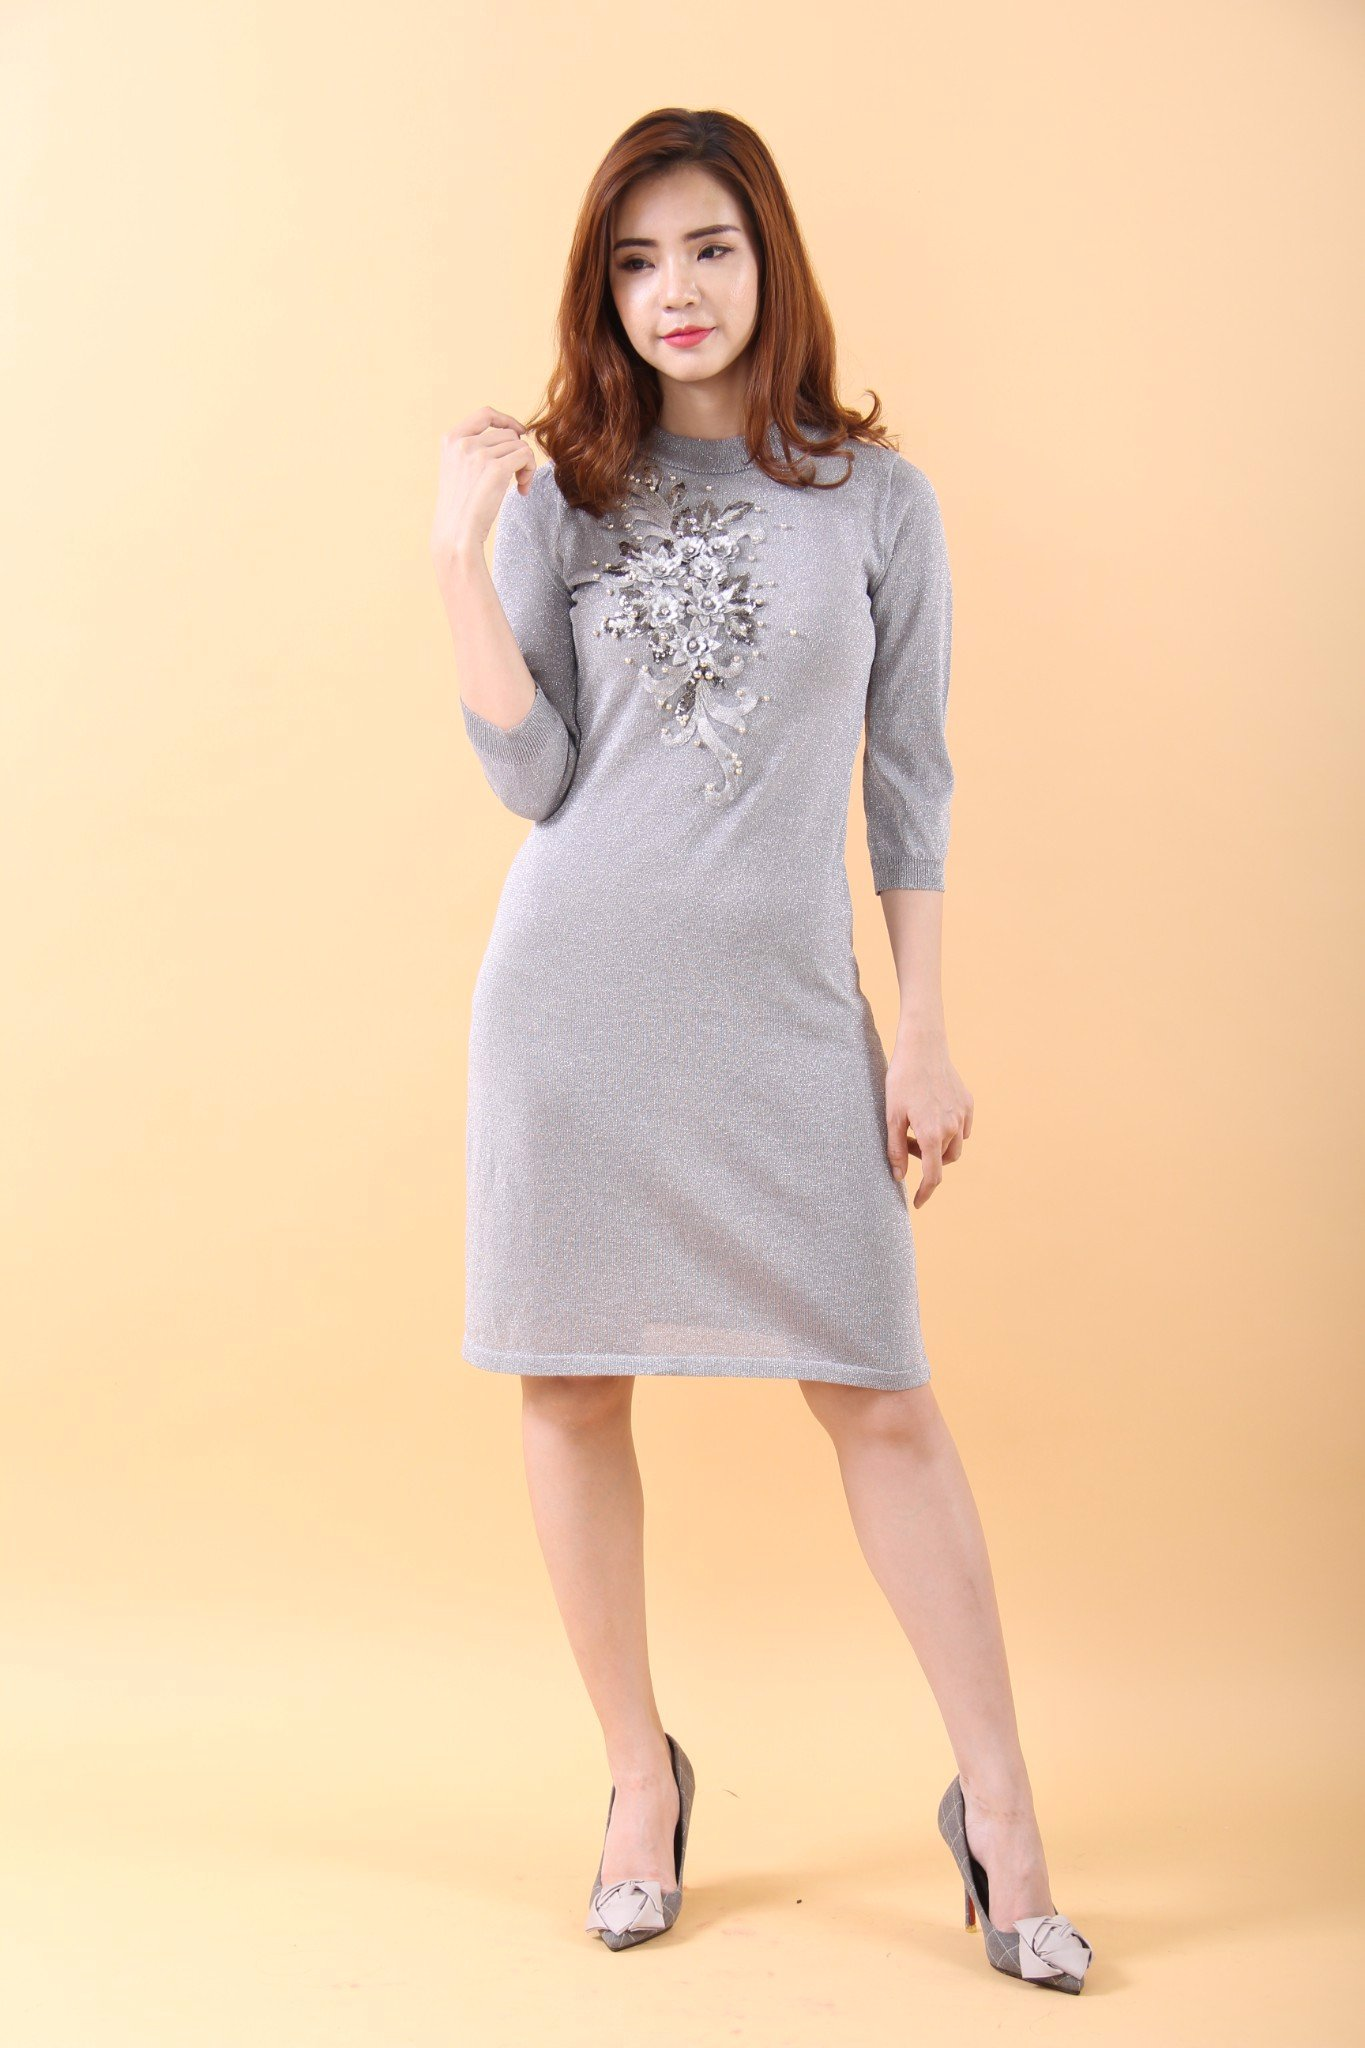 3D Lotus and pearls silver midi dress